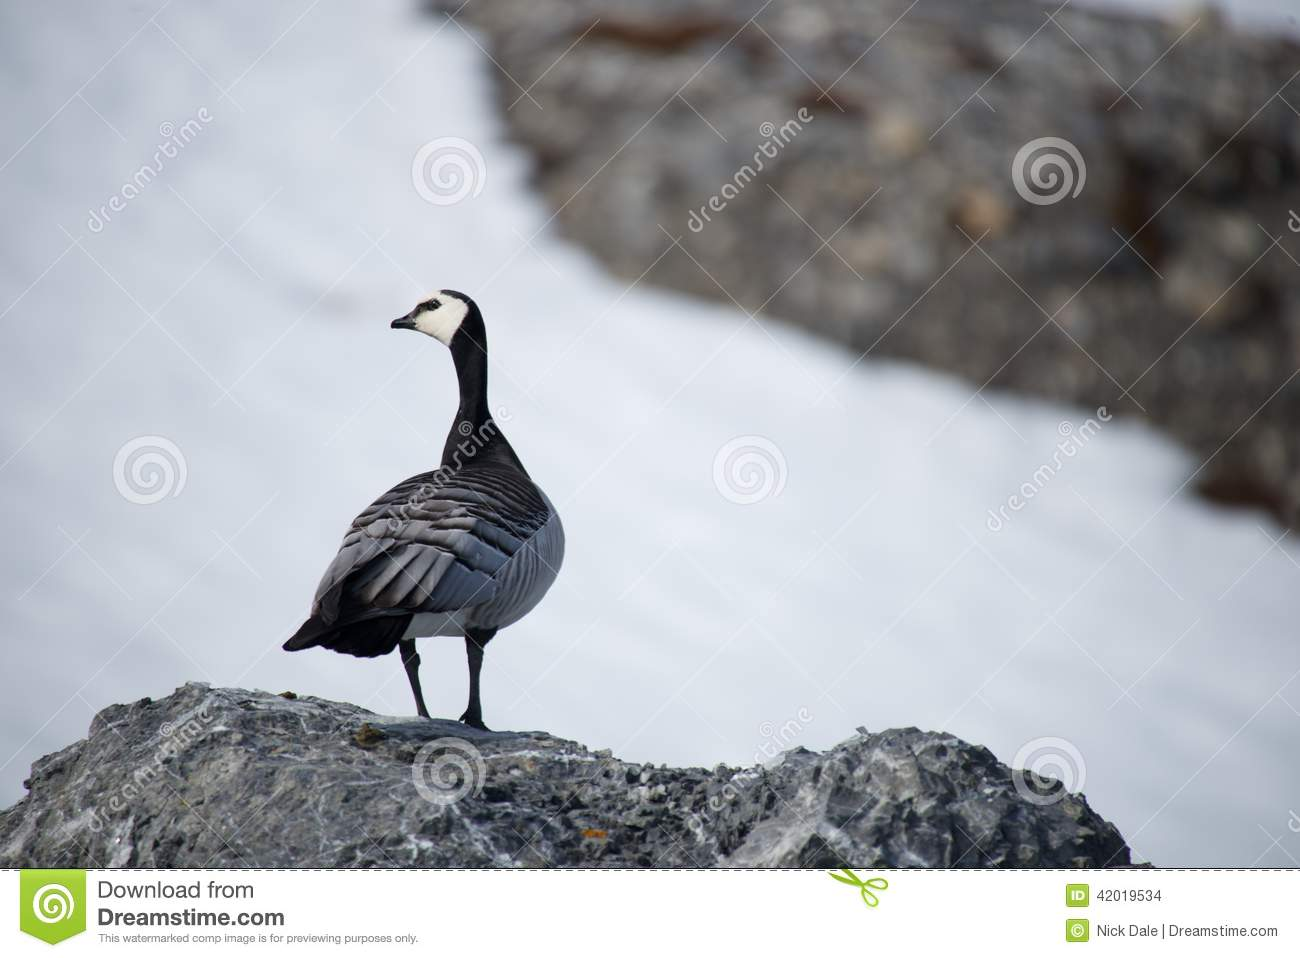 Download Barnacle Goose Perched On Rock Turning Head Stock Photo - Image of stones, goose: 42019534